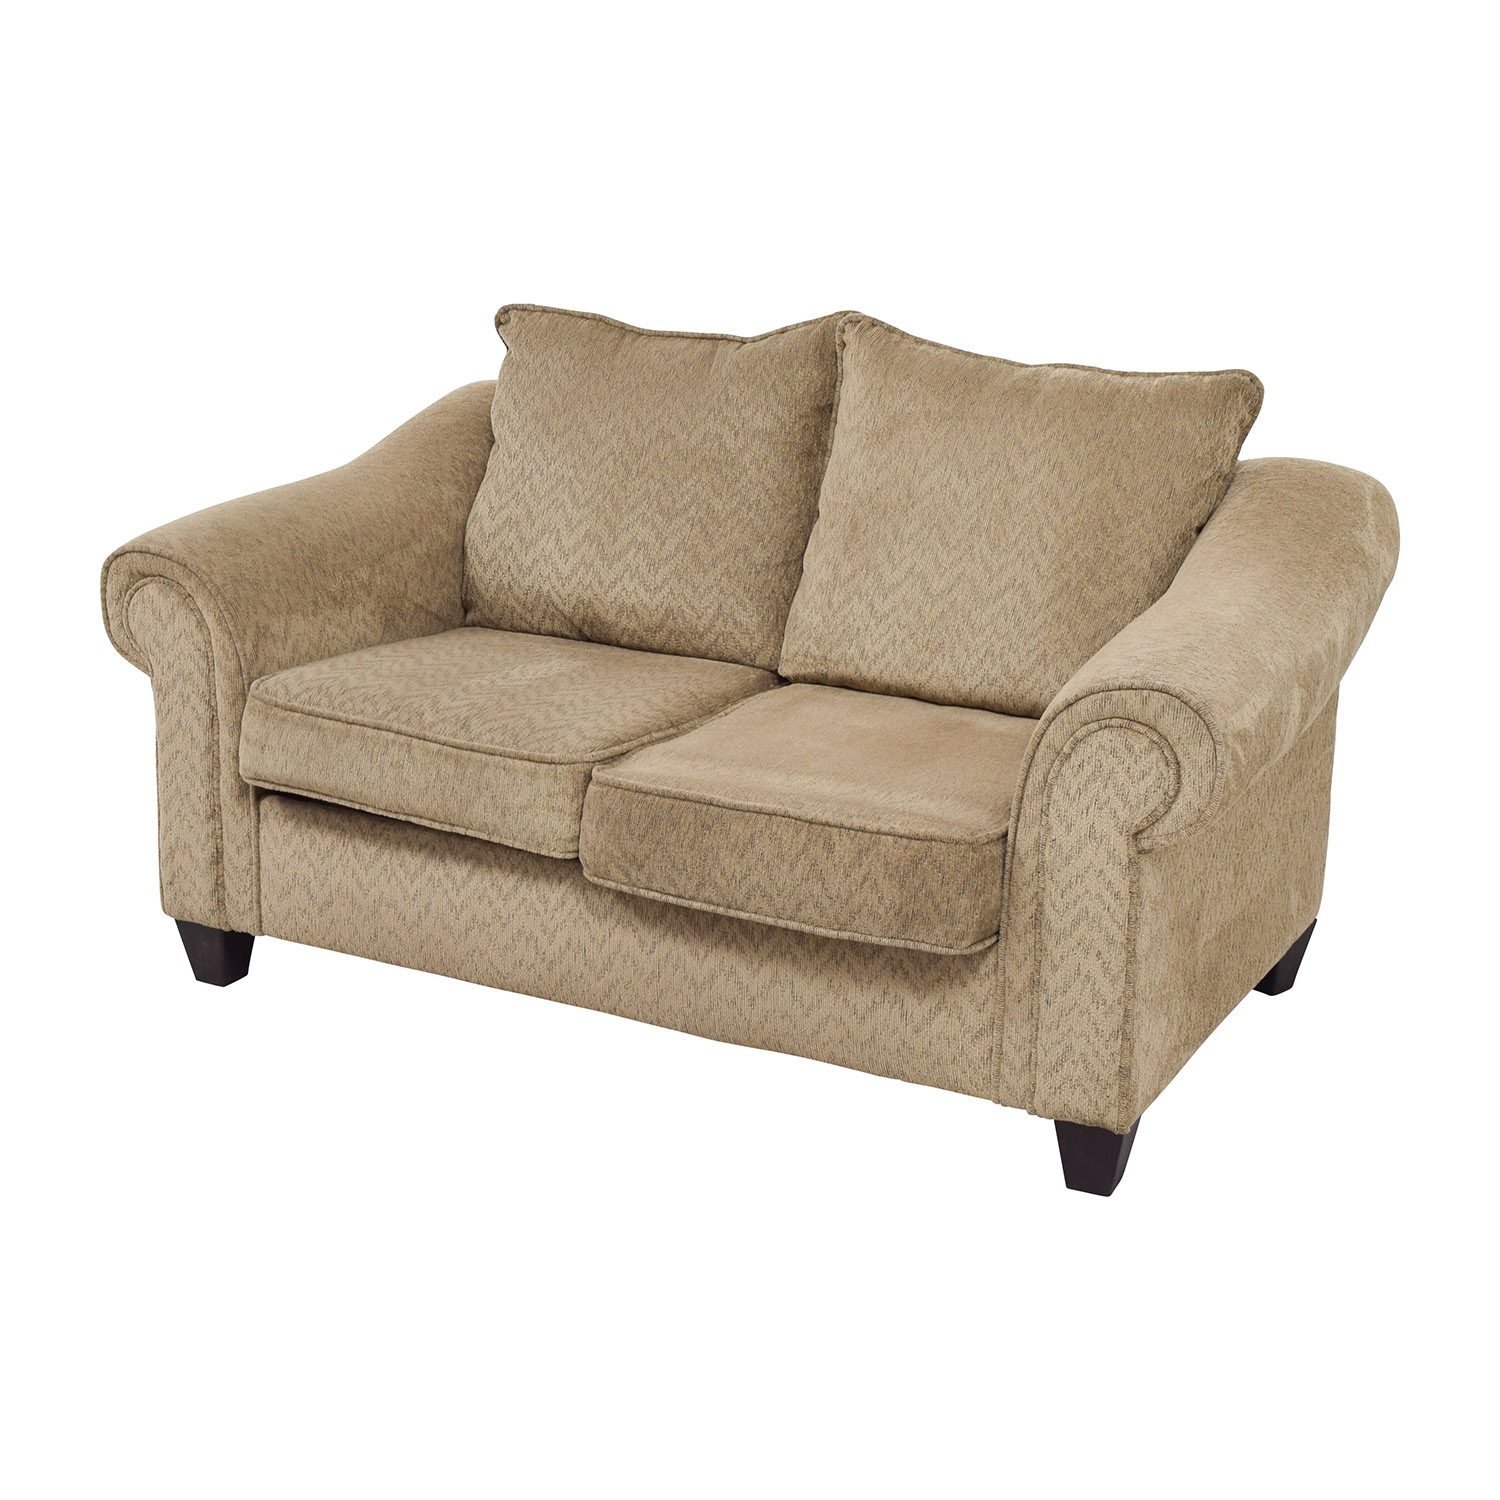 84 Off Bob 39 S Furniture Bob 39 S Furniture Two Toned Brown Loveseat Sofas